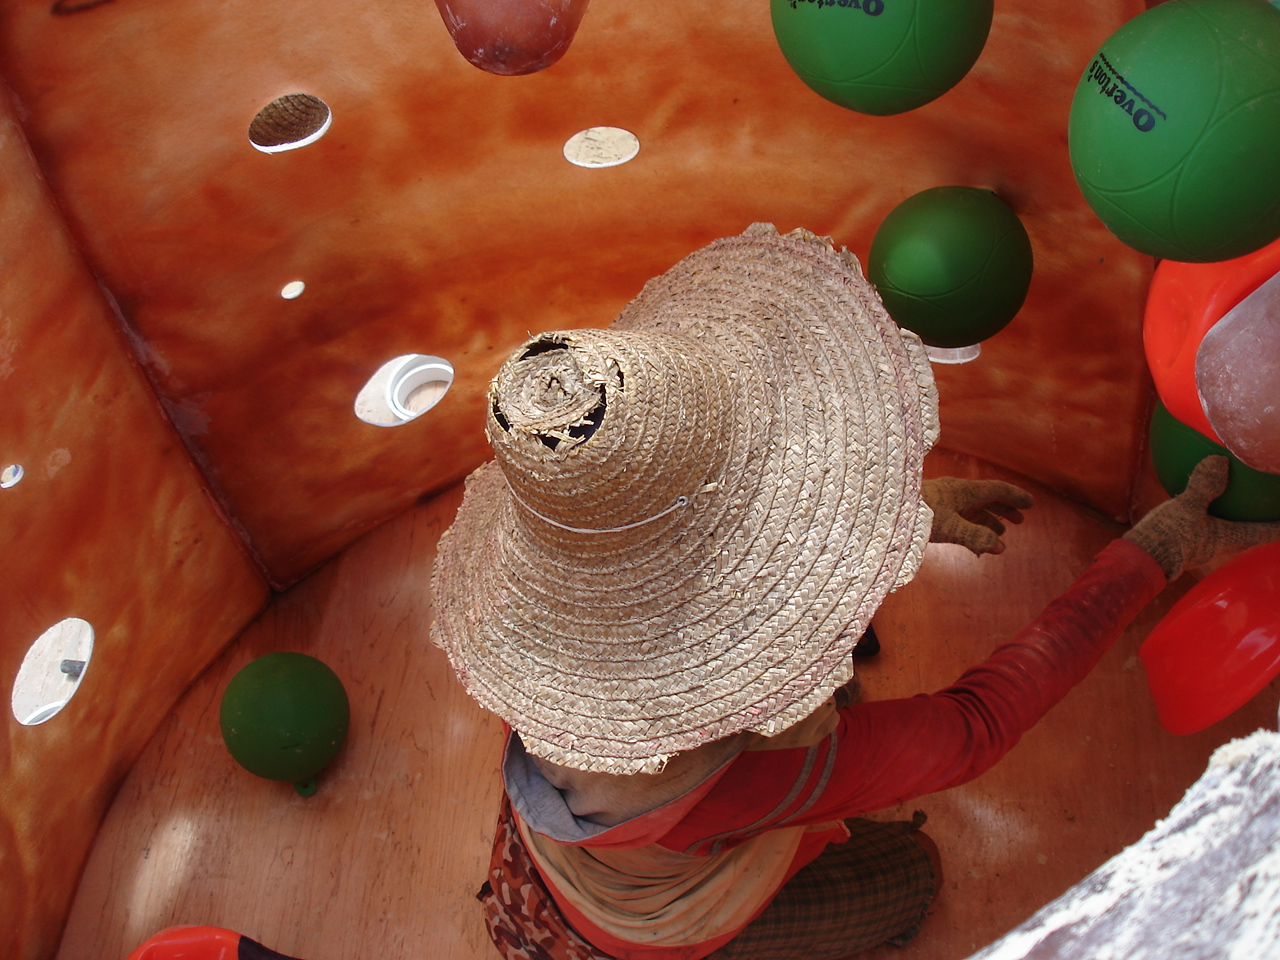 Inside the Reef Ball mold with tether balls - Borneo